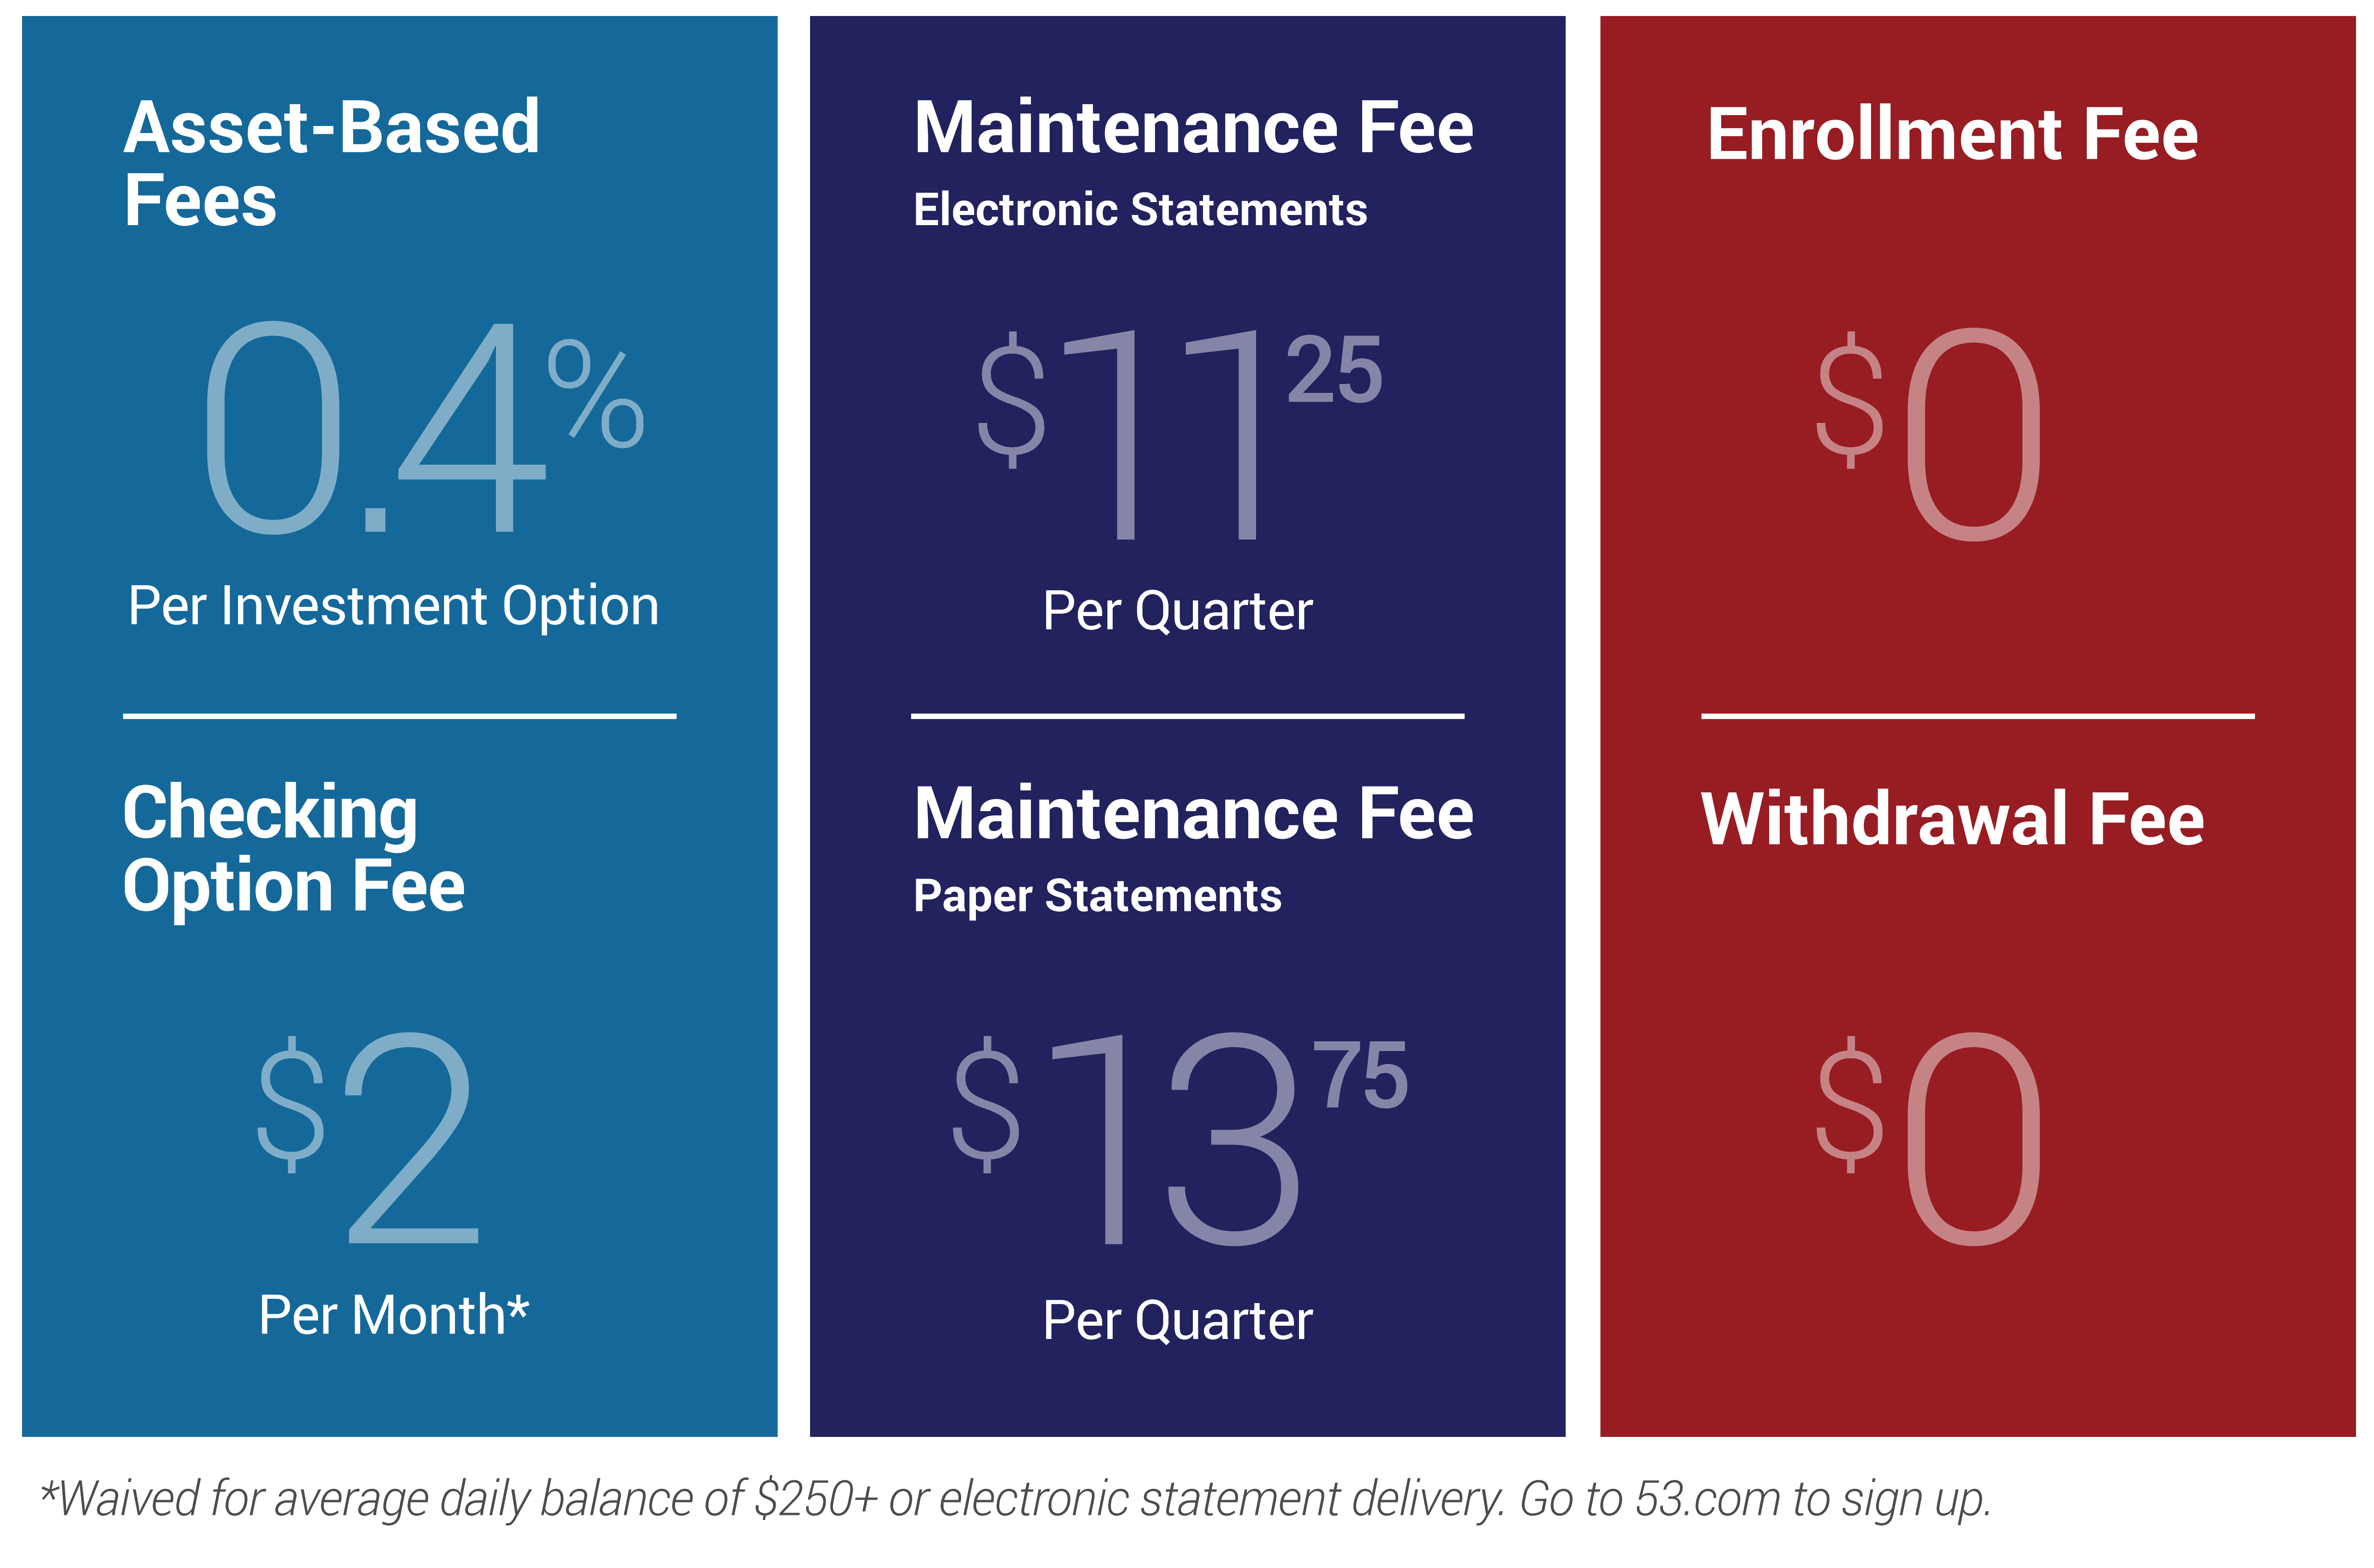 Each investment option in NY ABLE, other than the Checking Option, is assessed a 0.40% asset-based fee over the course of the year. Each account is also charged a quarterly fee for maintenance and administration. If an Account Owner elects electronic delivery notification for statements and confirmations, the quarterly fee is $11.25. If the Account Owner elects paper delivery for statements and confirmations, the quarterly fee is $13.75. Accounts invested in the Checking Option will be charged a $2 monthly service charge. The fee is waived for average daily balances over $250 or Accounts enrolled in electronic statement delivery directly with Fifth Third Bank. There are no enrollment or withdrawal fees in NY ABLE.